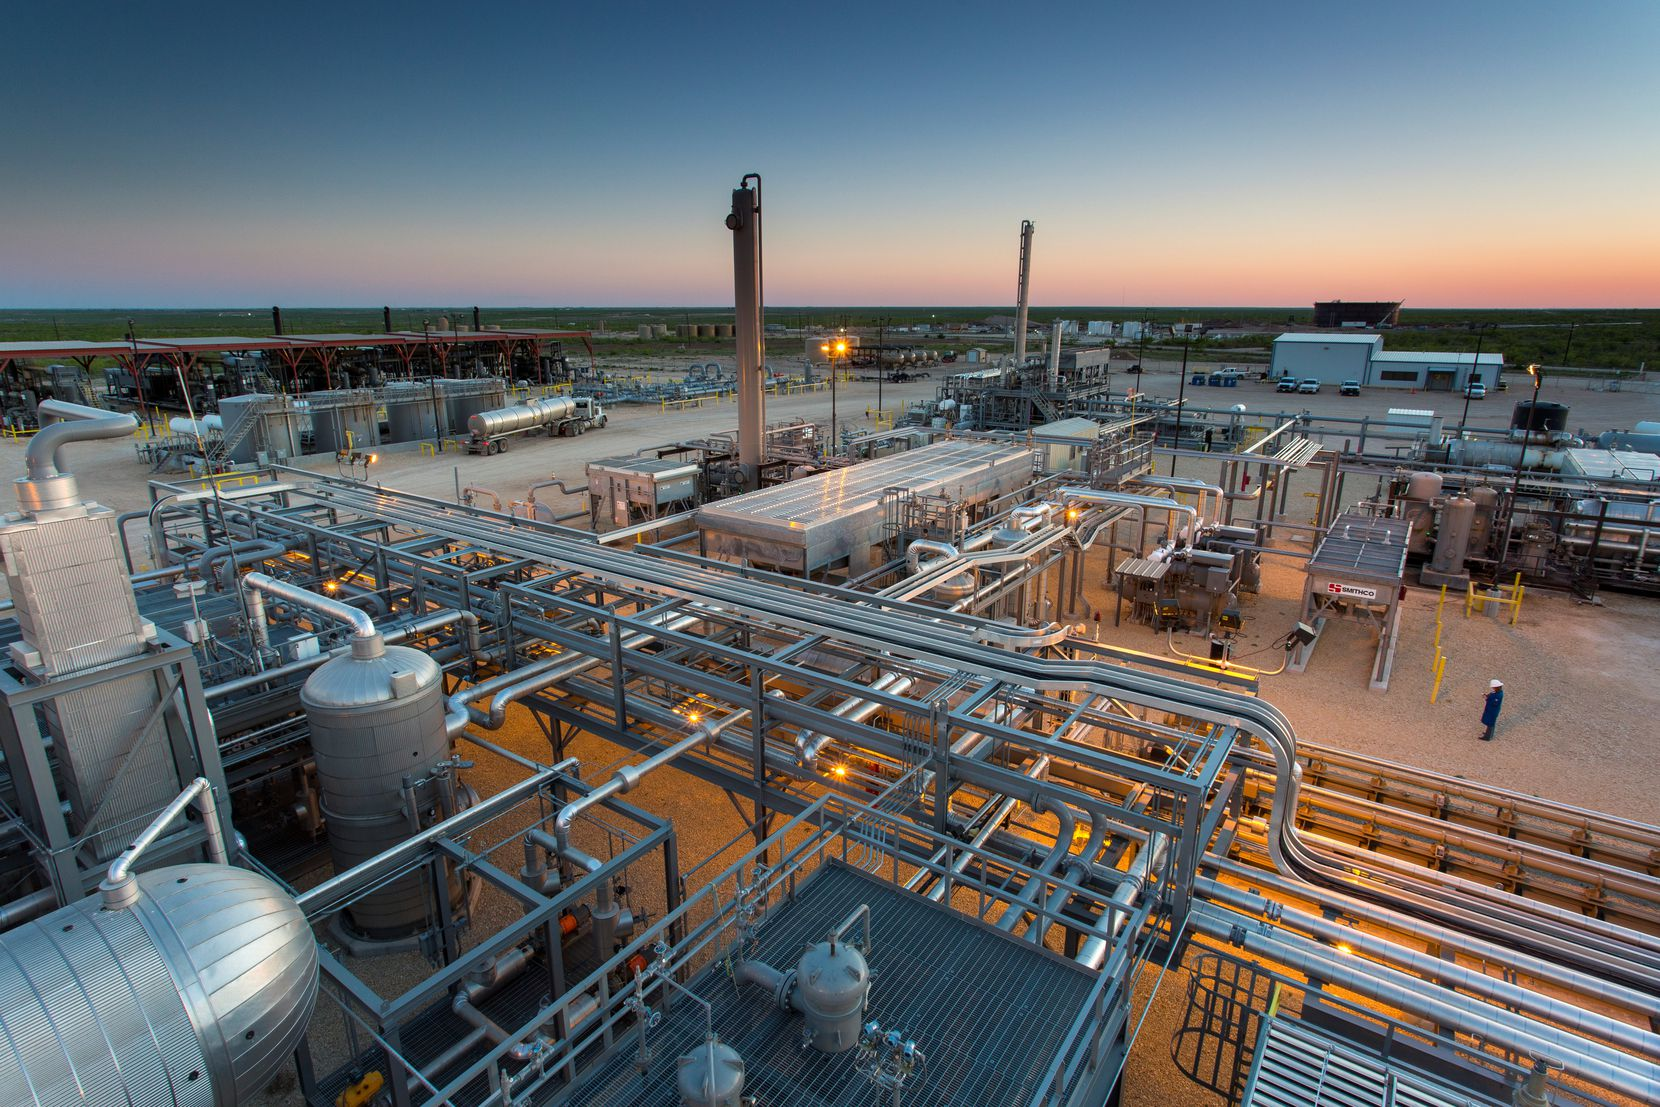 Exxon dramatically cut its spending this year in the oil-rich Permian Basin, where this EnLink Midstream plant is located.